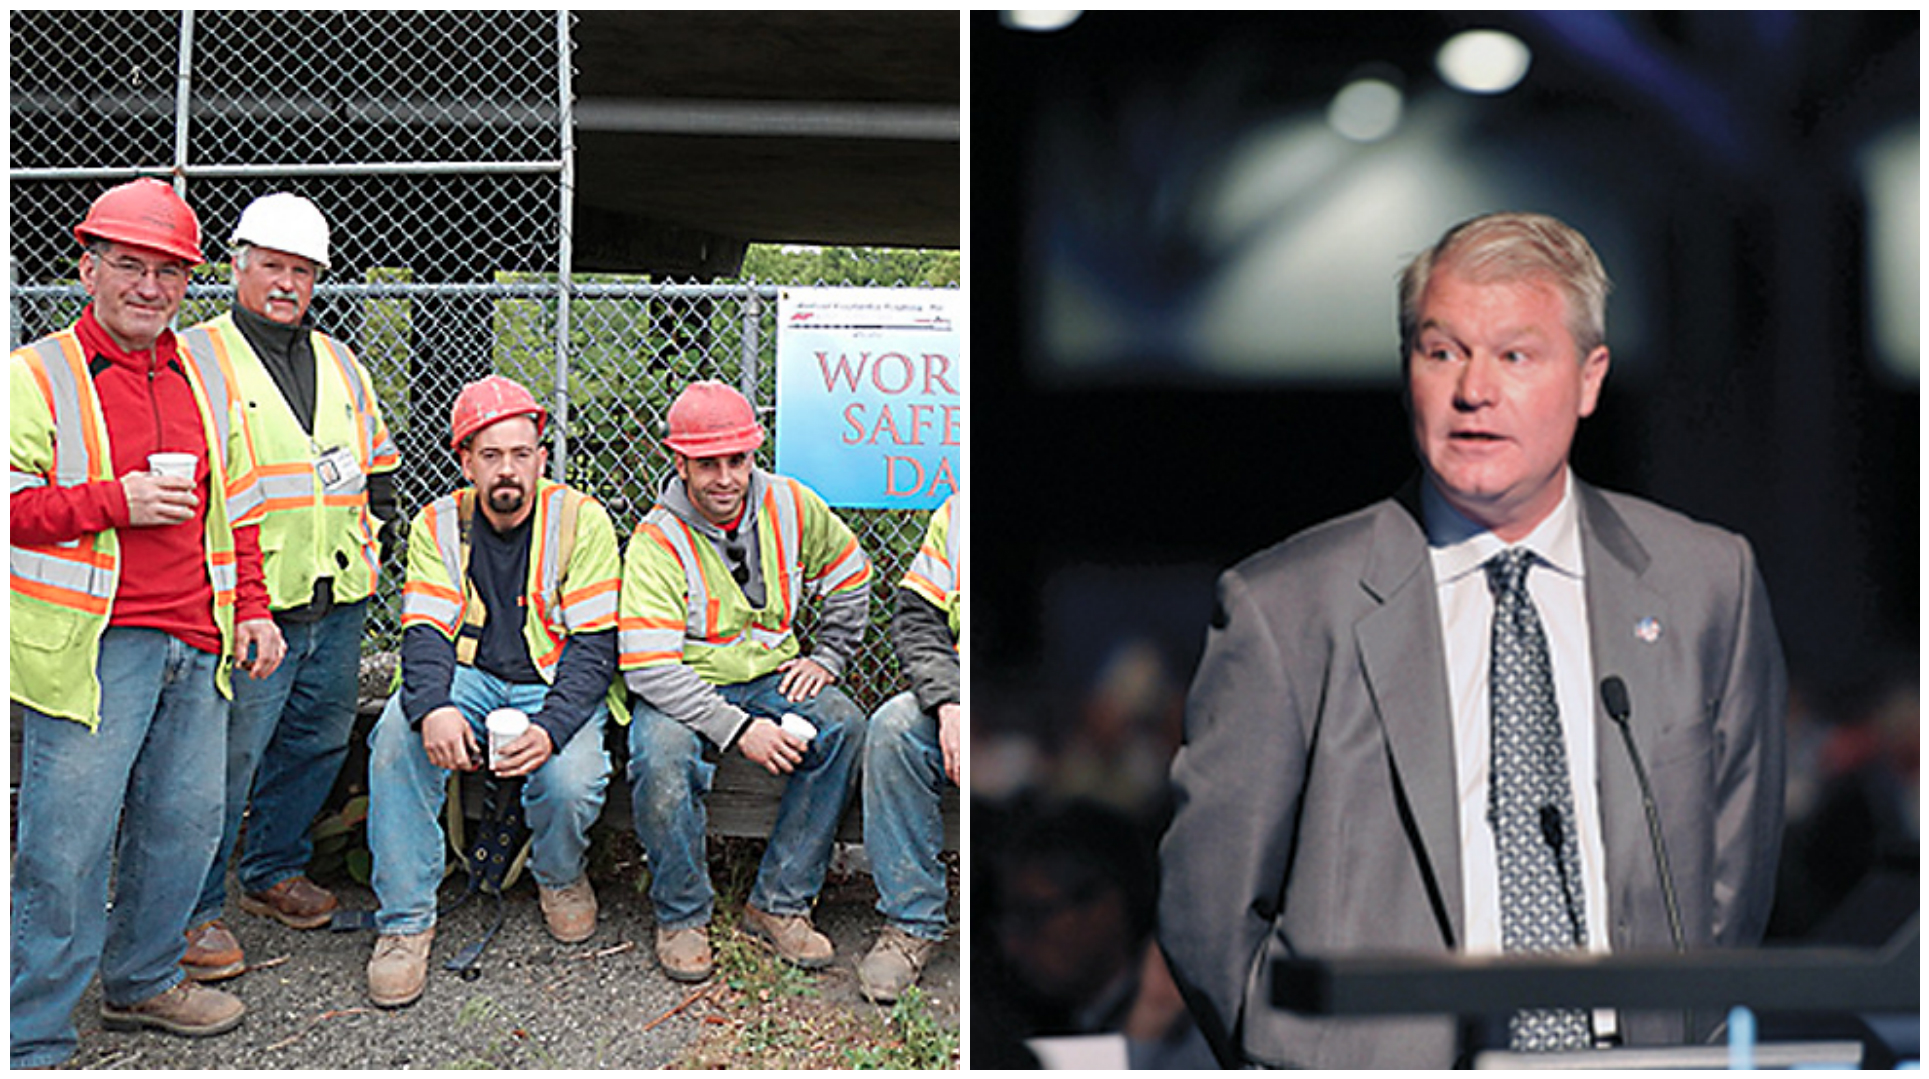 Left: Construction workers in Philadelphia. Right: IBEW Local 98 Business Manager John Dougherty.